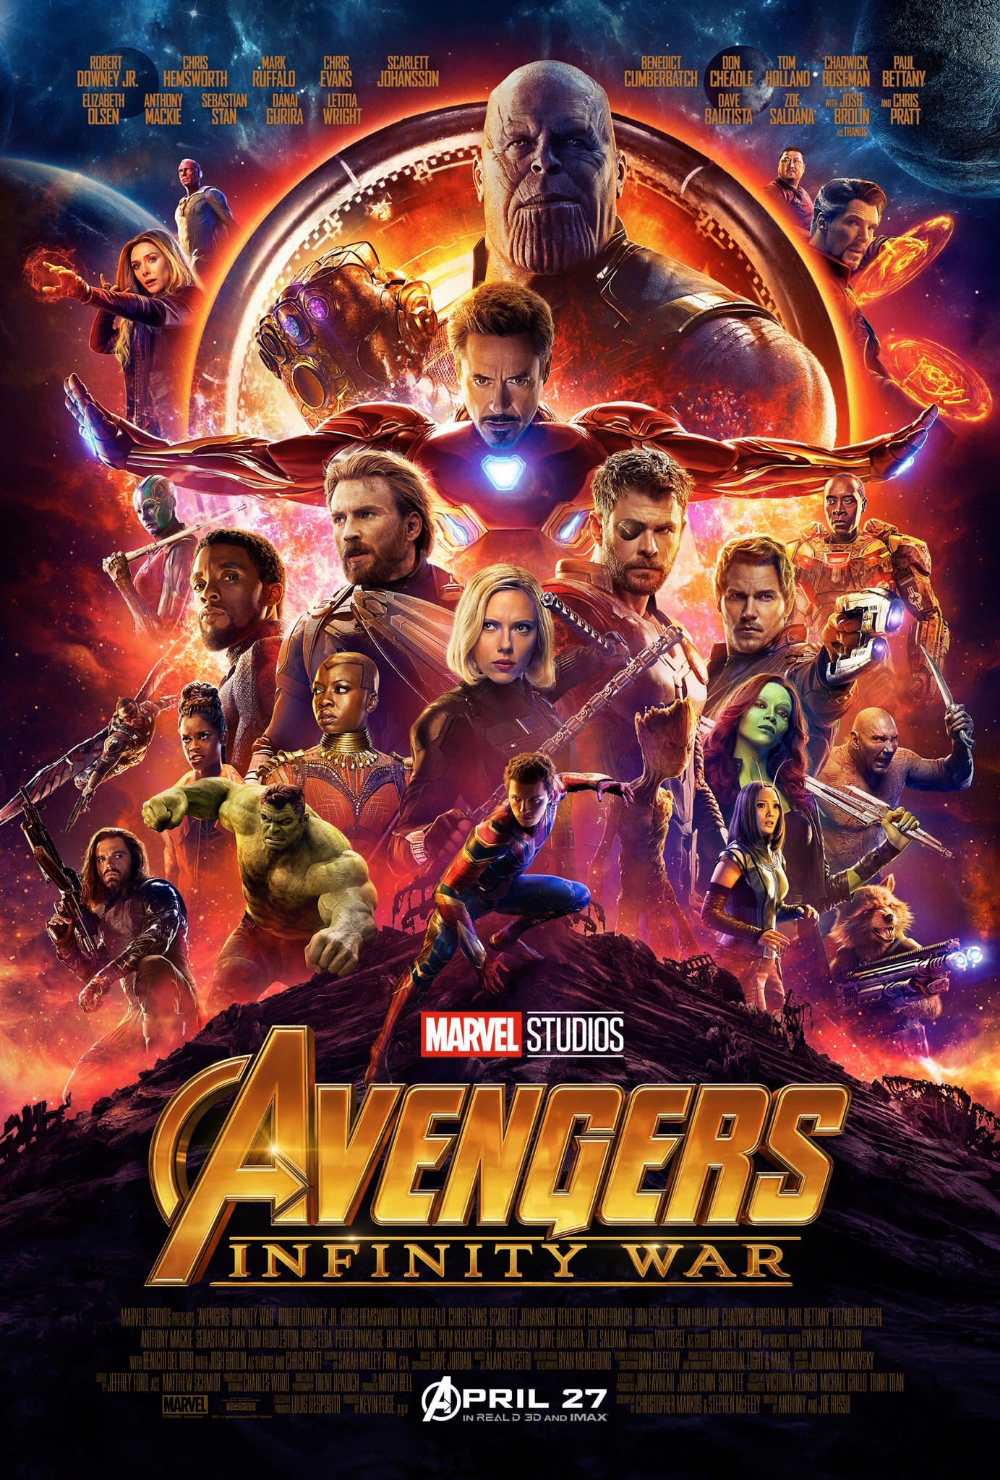 Return To The Main Poster Page For Avengers Infinity War 2 Of 45 Avengers Infinity War Avengers Poster Marvel Posters